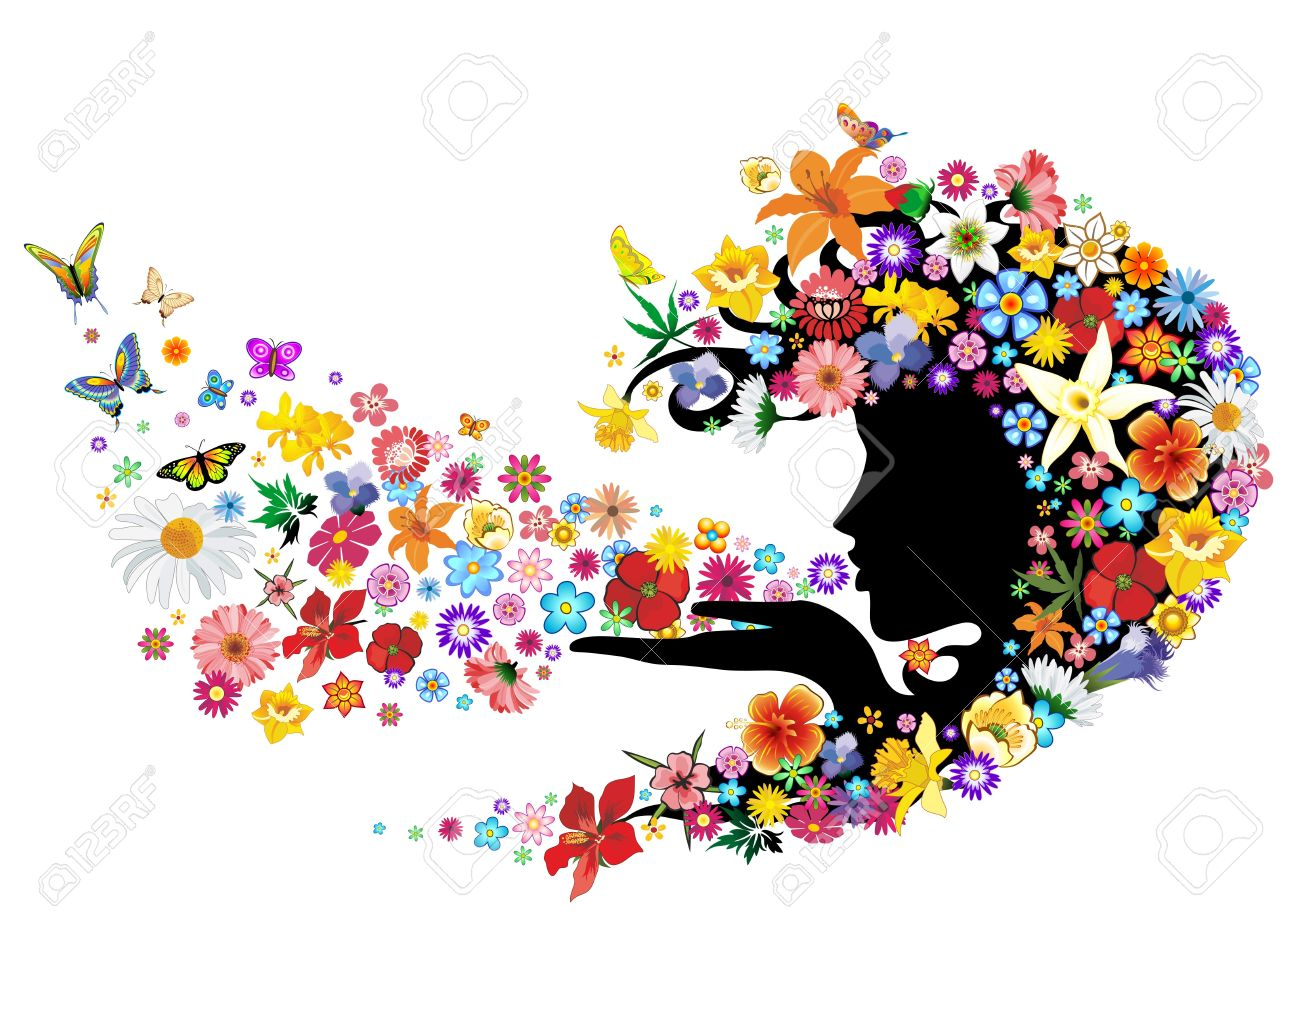 Spring Breath Flowers Mother Nature Portrait Stock Vector - 18198060